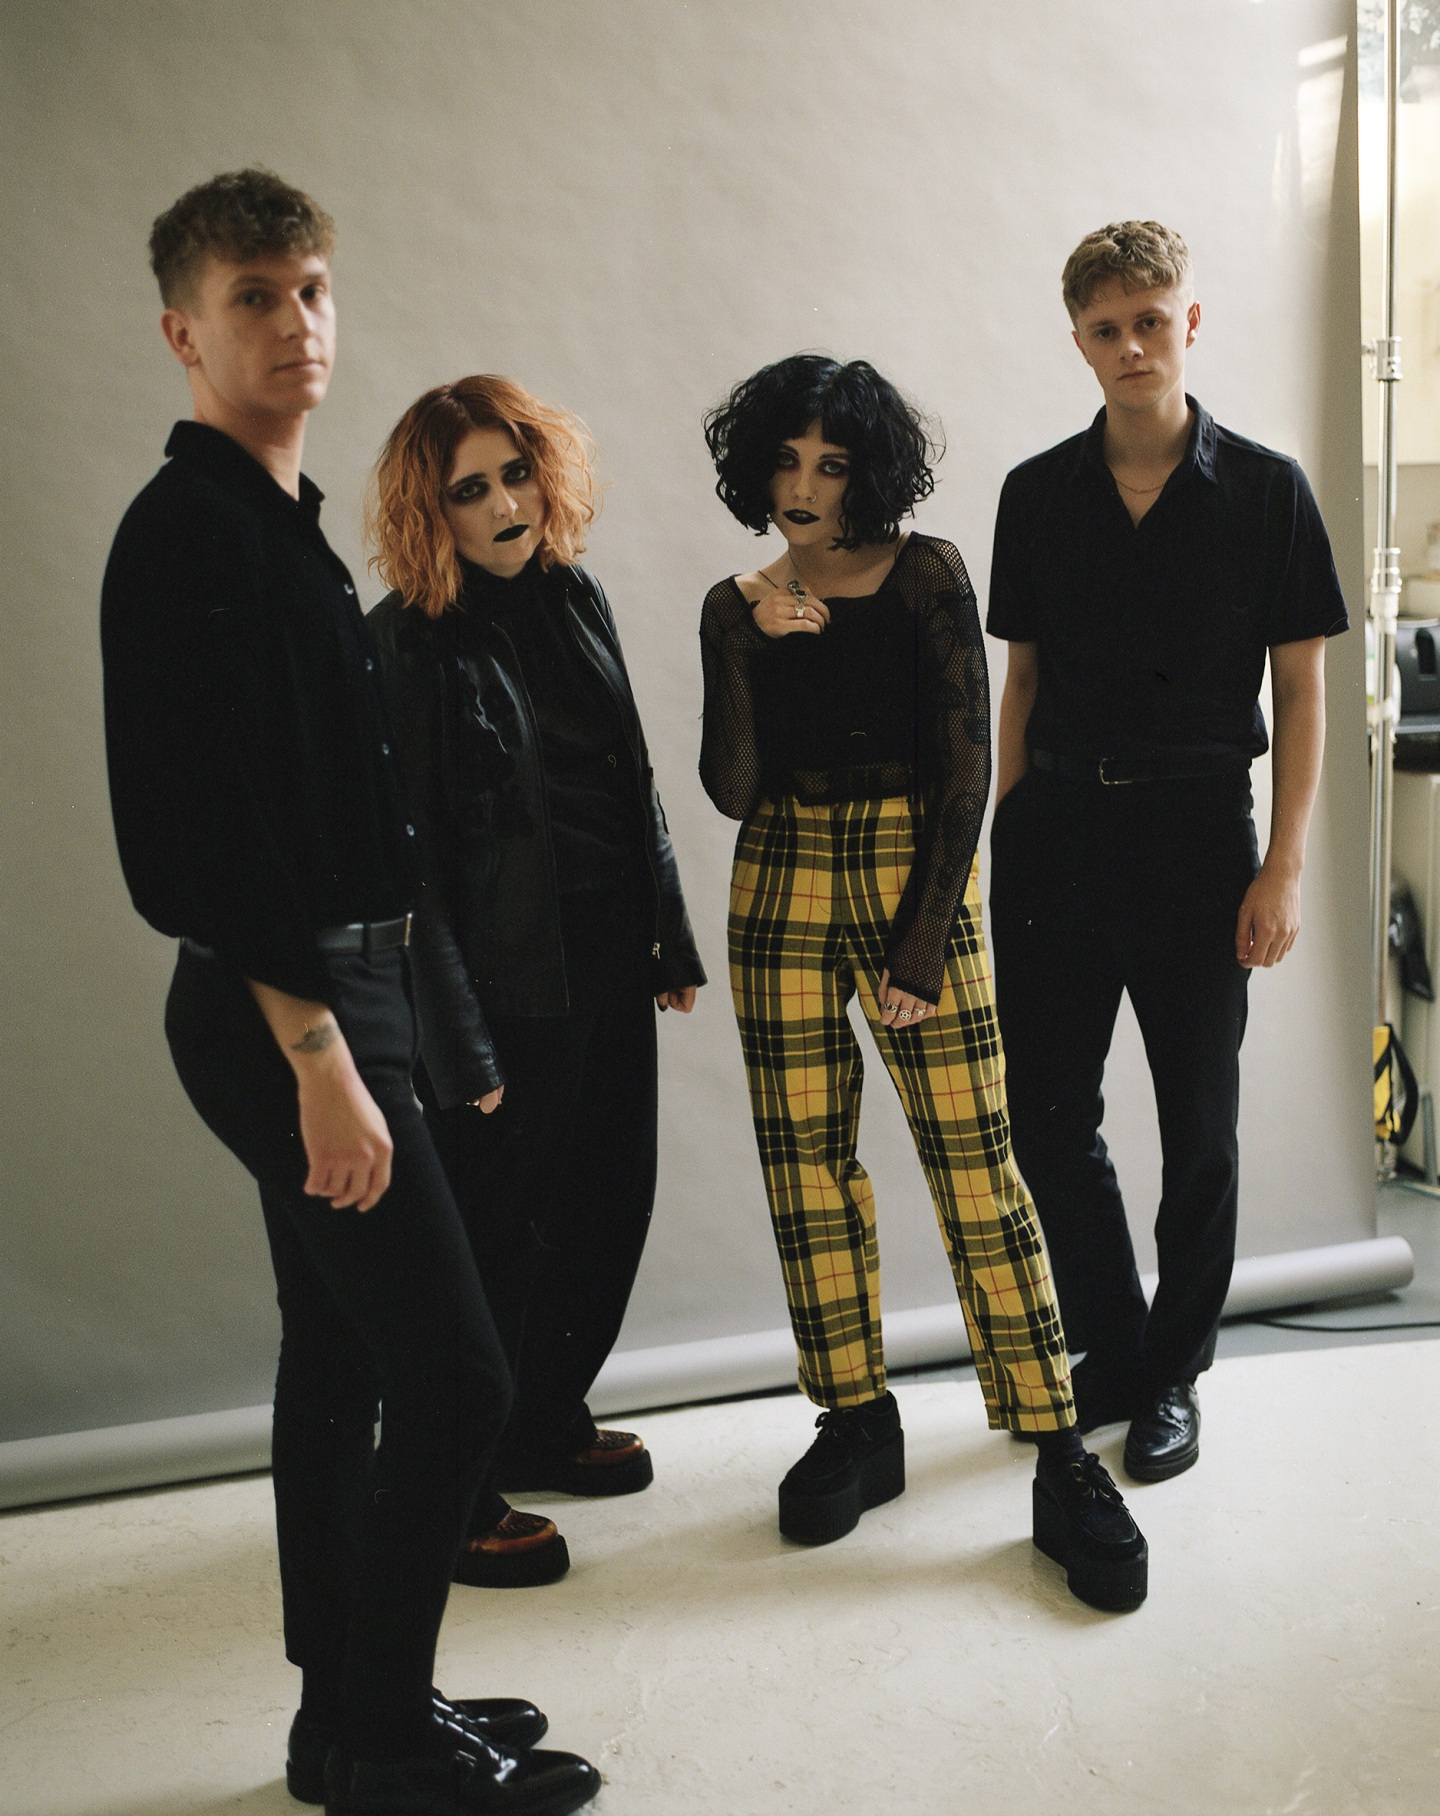 Pale Waves is the goth pop hybrid you didn't know you needed